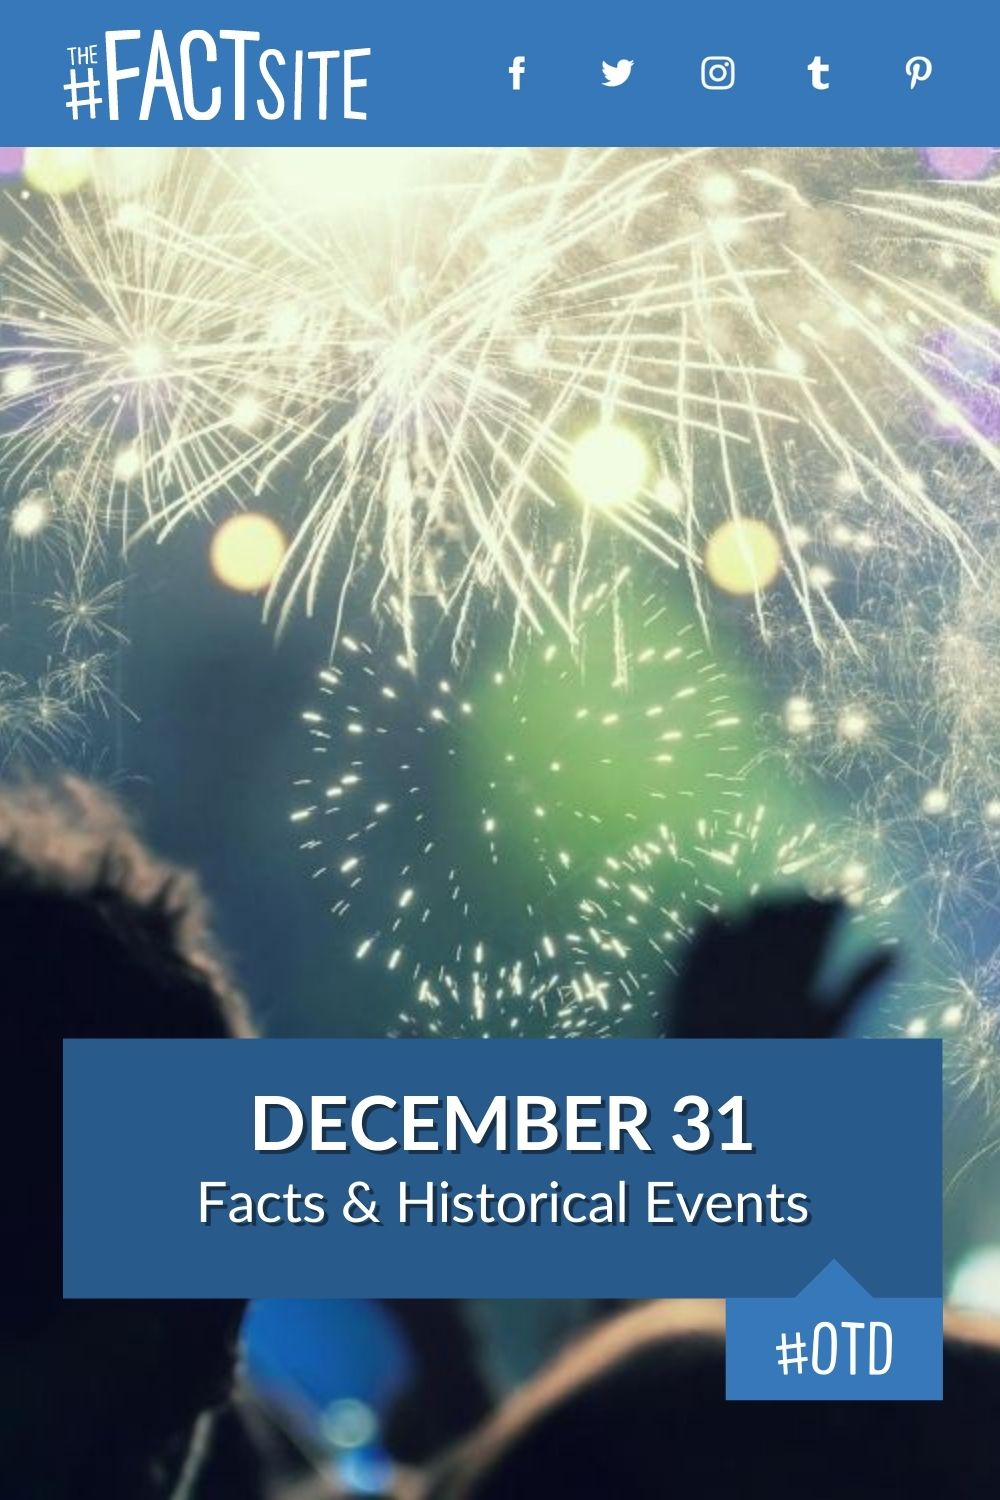 Facts & Historic Events That Happened on December 31